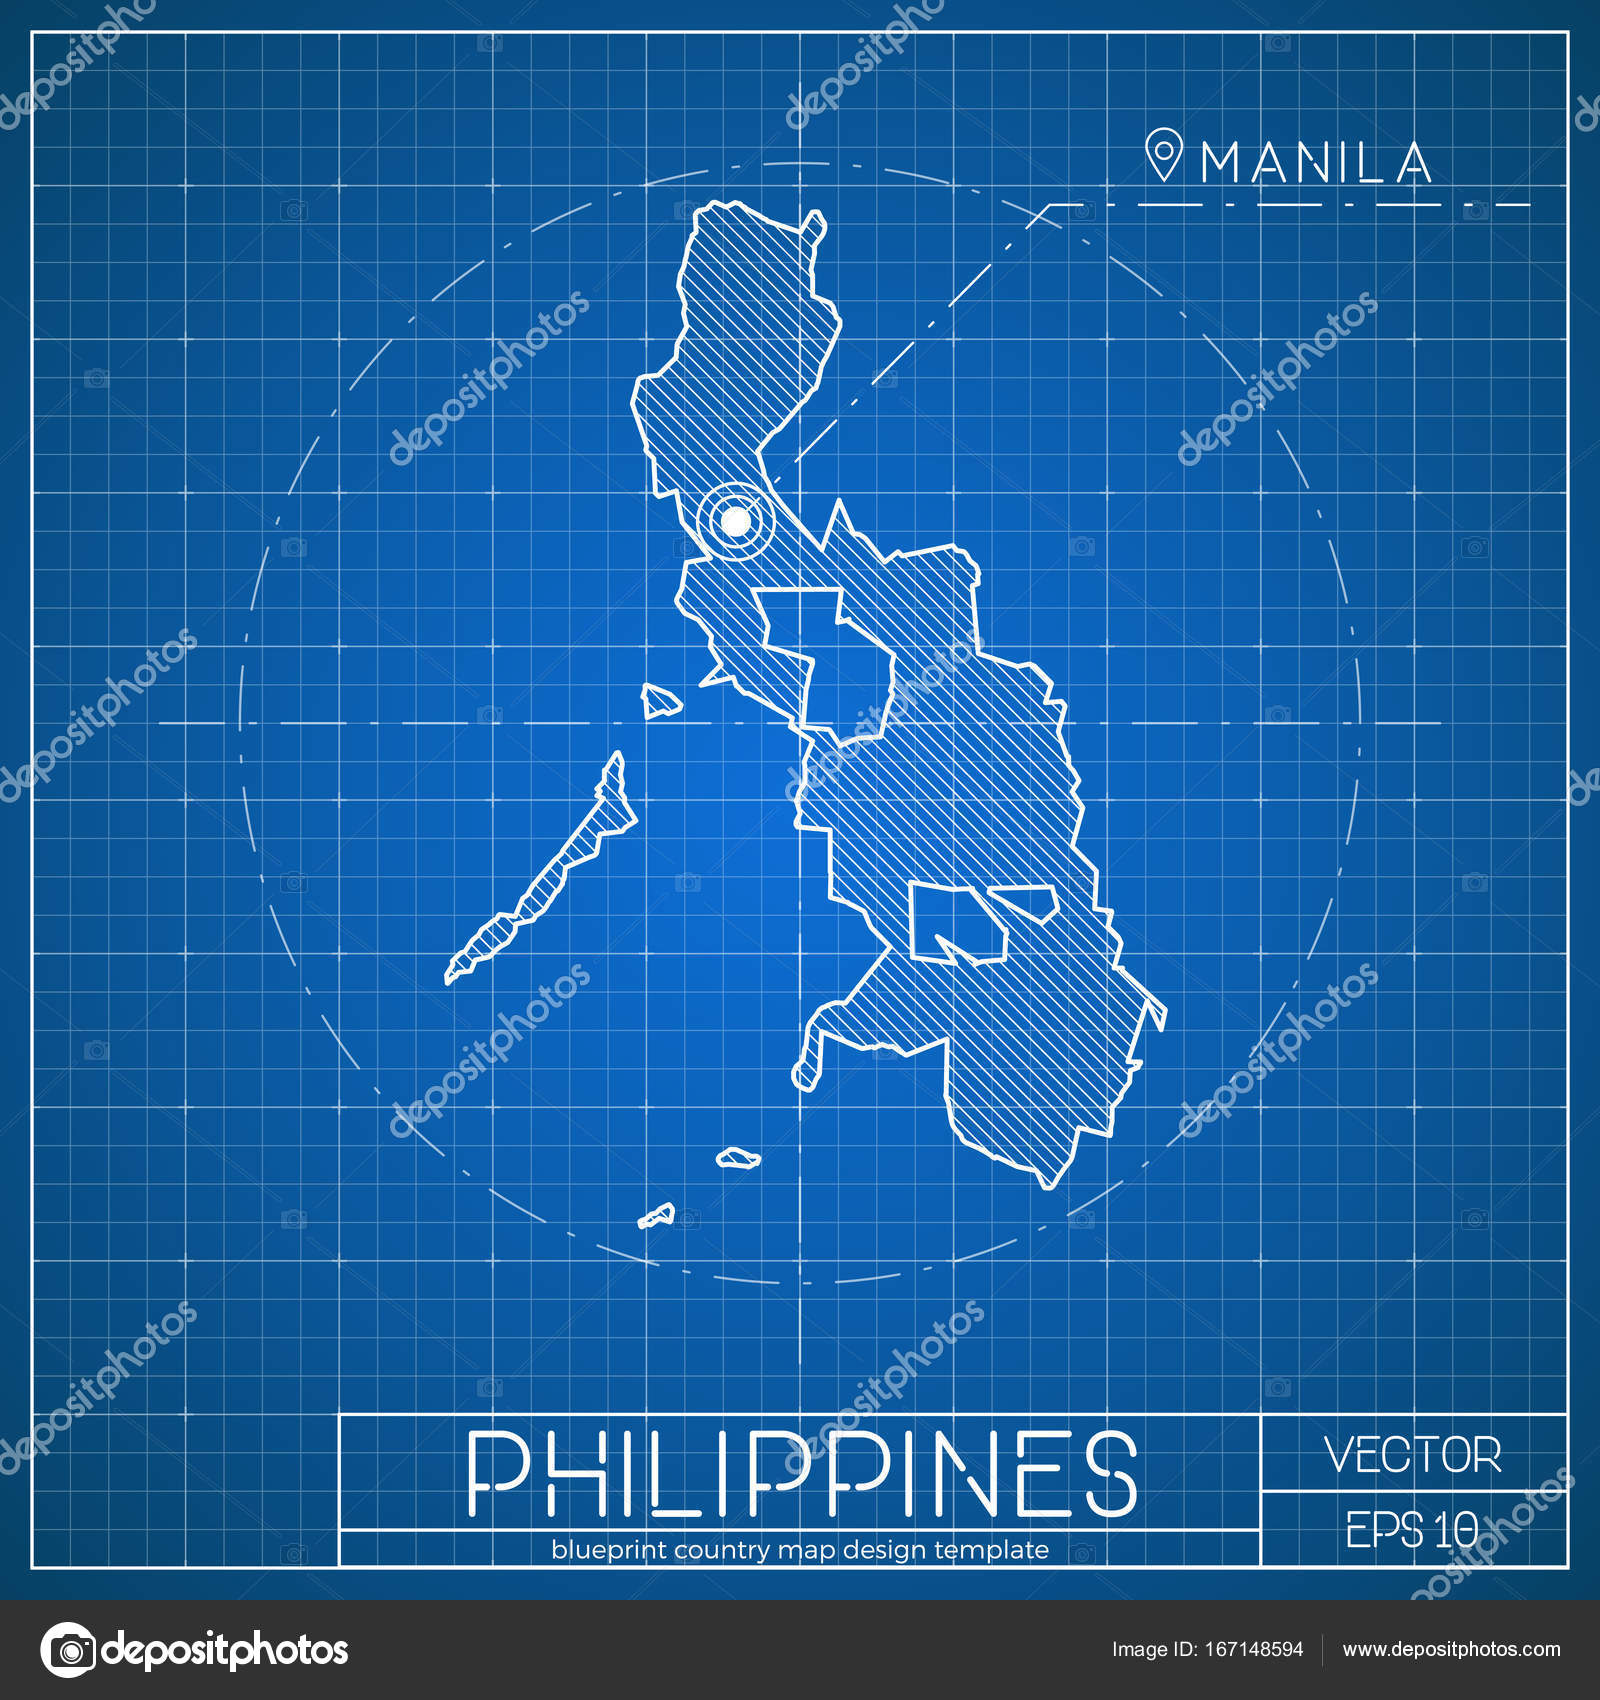 Philippines blueprint map template with capital city manila marked philippines blueprint map template with capital city manila marked on blueprint filipino map stock vector malvernweather Images